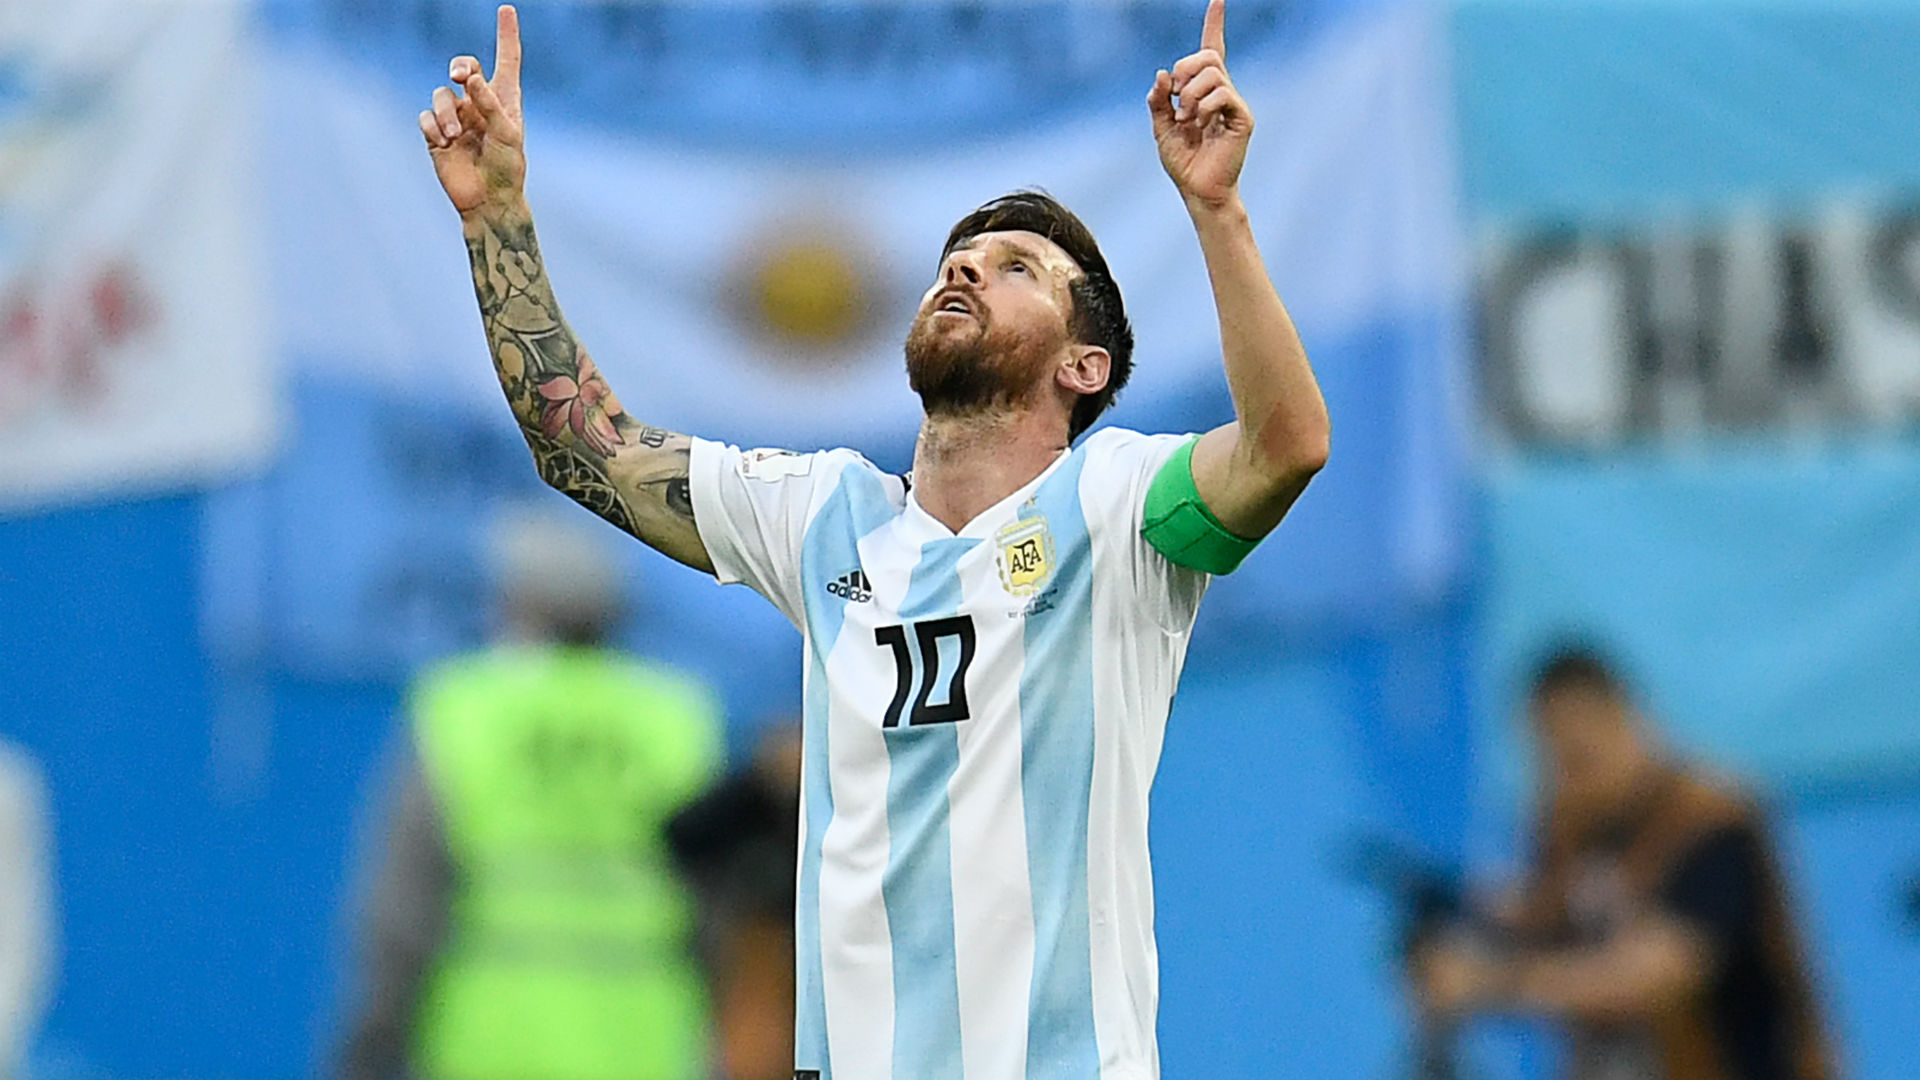 Messi shocks World Cup journalist with ribbon sent to him by reporter's mother